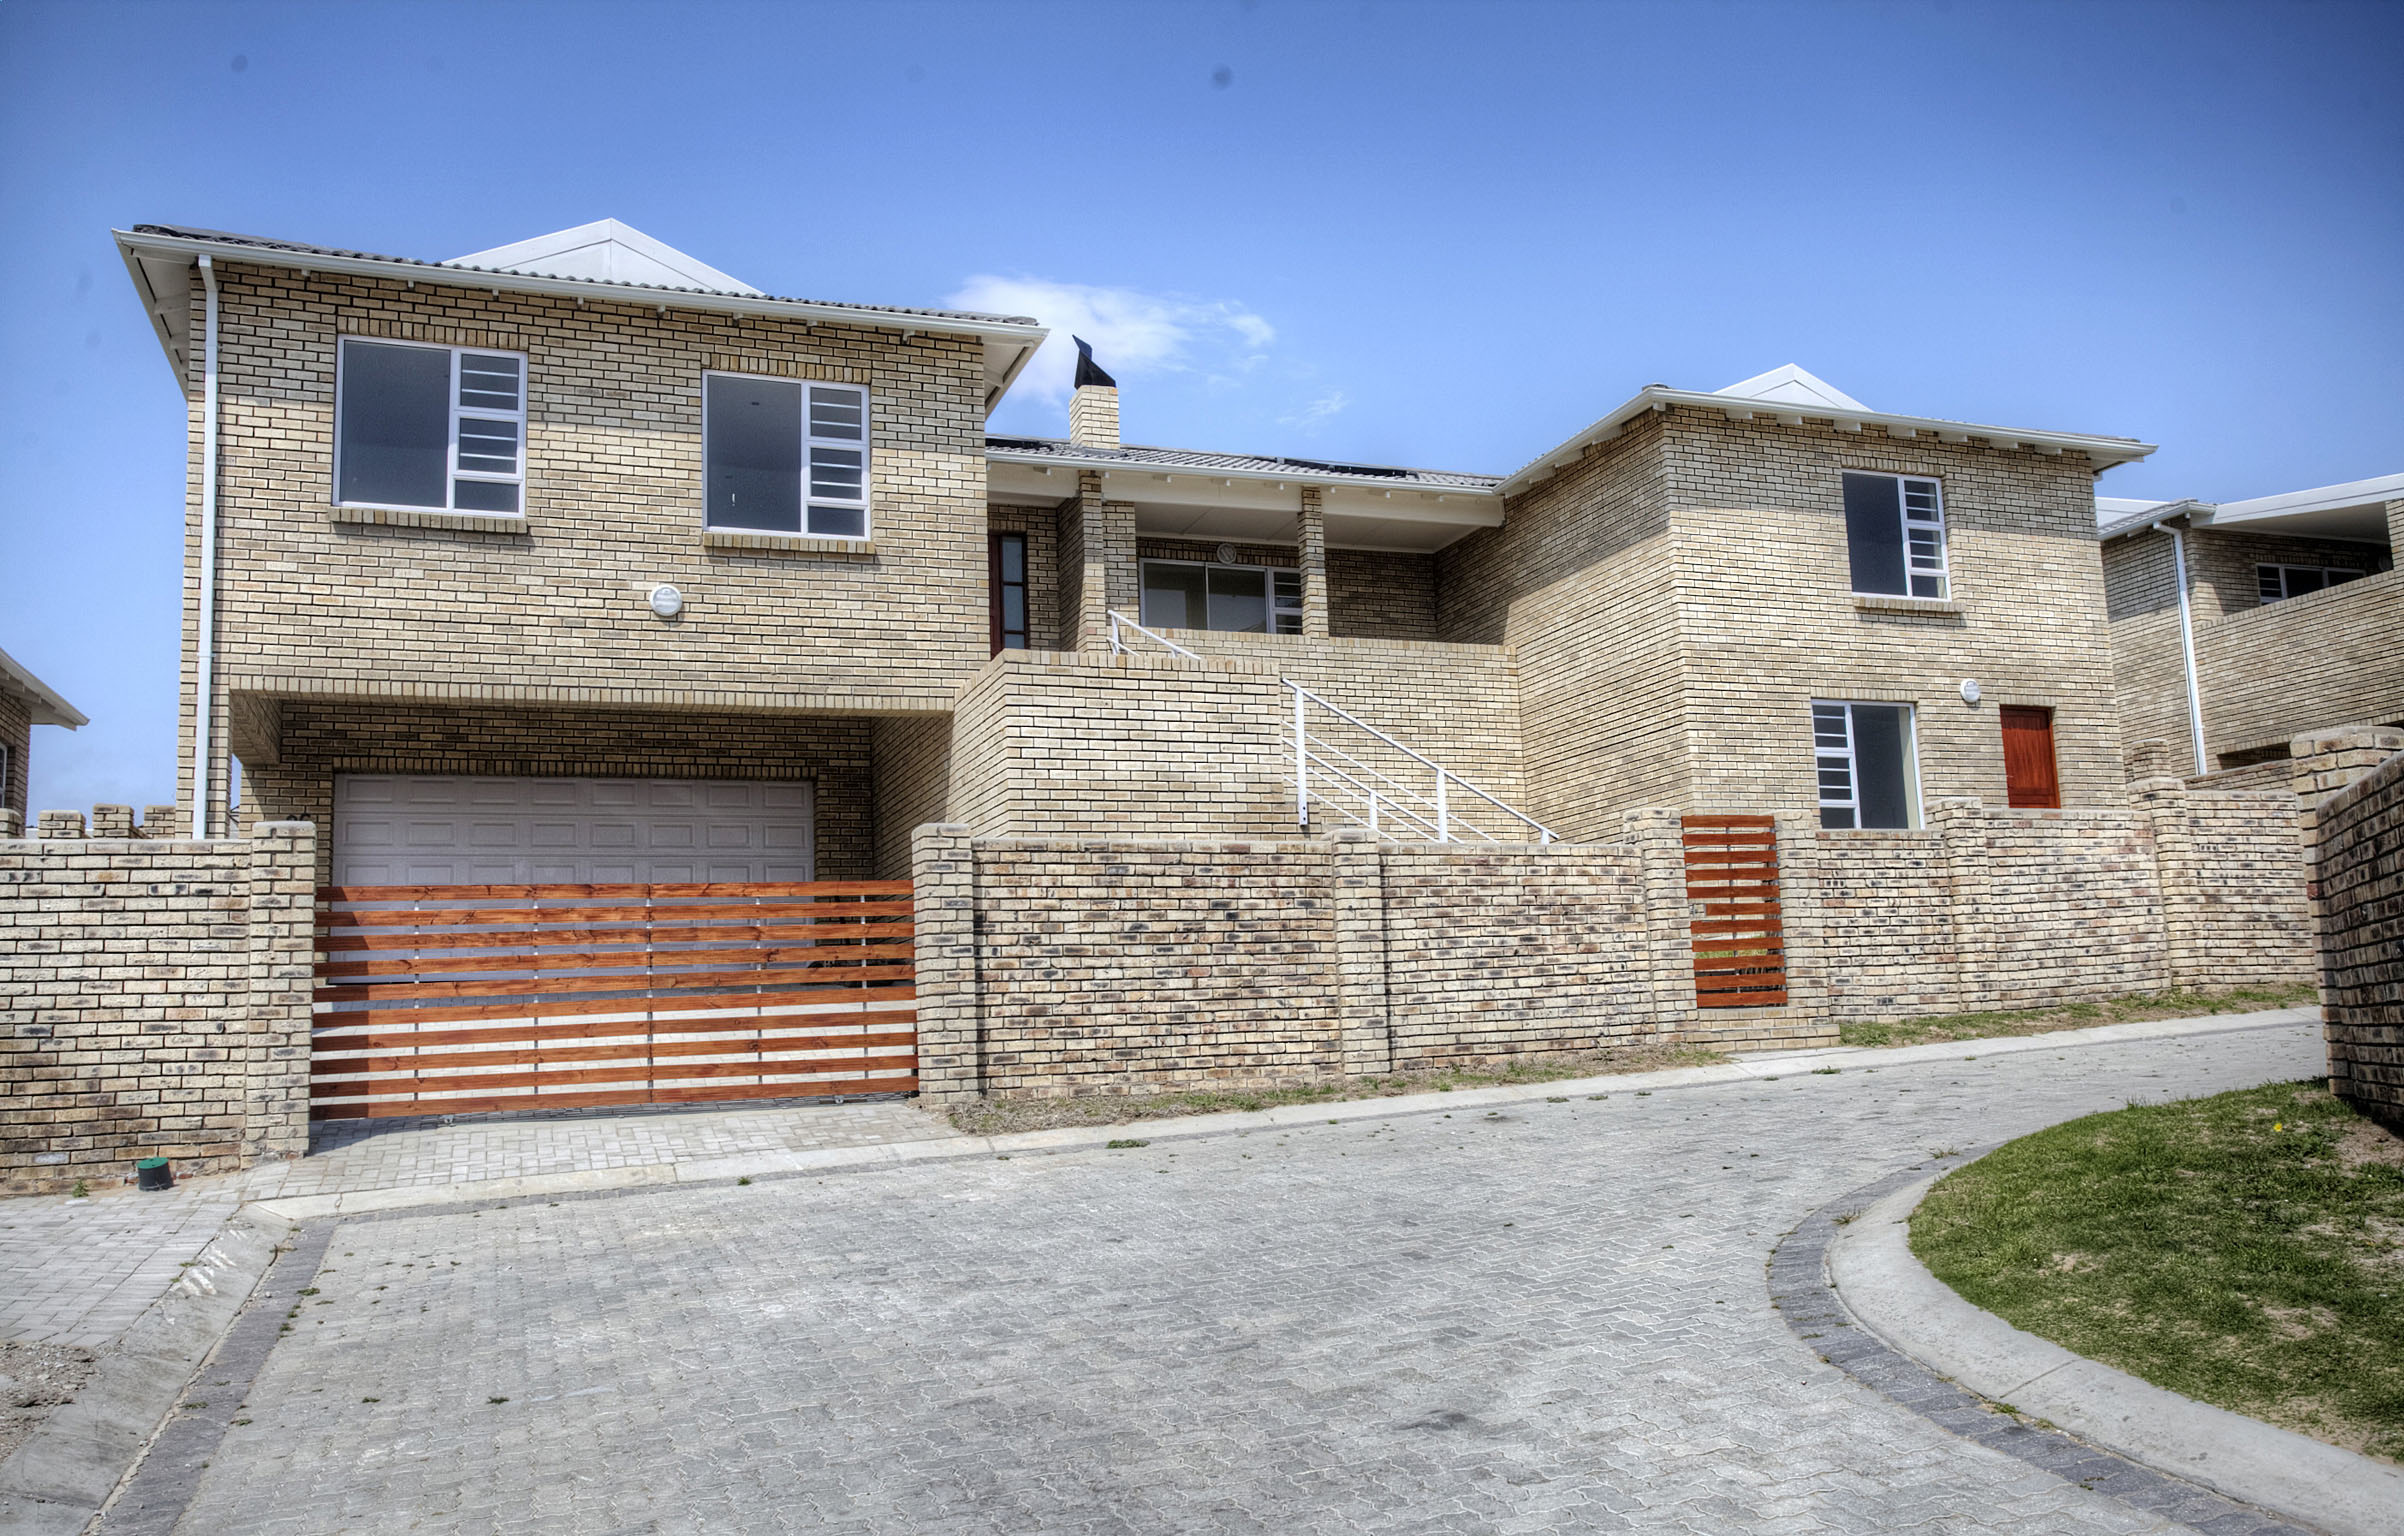 4 Bedroom House for sale in Lorraine ENT0068019 : photo#0